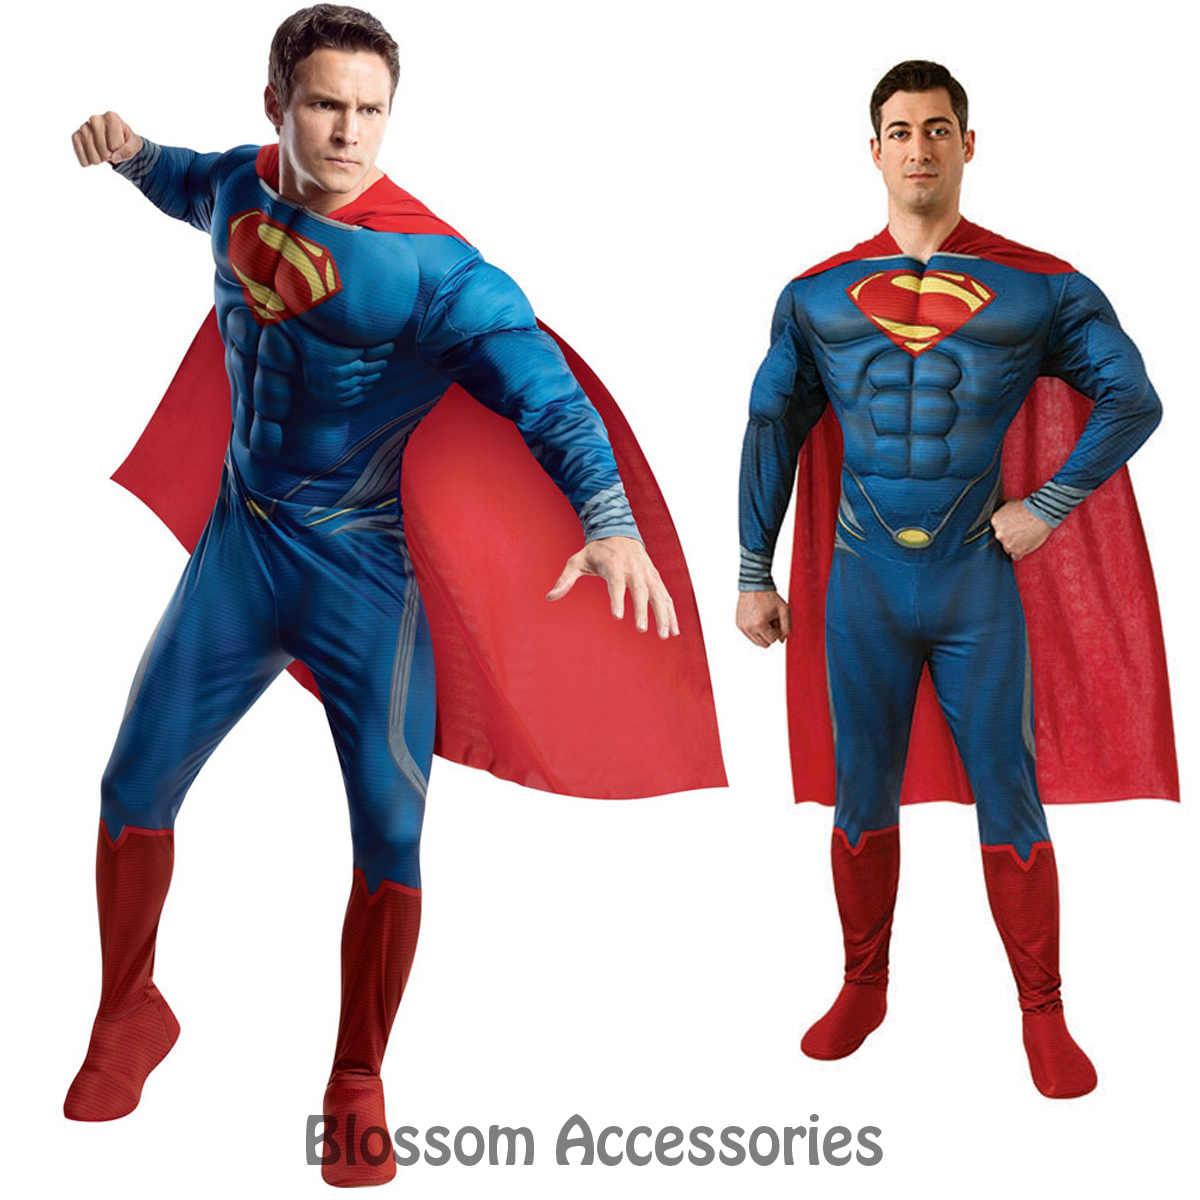 C731-Superman-Man-of-Steel-Deluxe-Muscle-Chest-Superhero-Adult-Costume